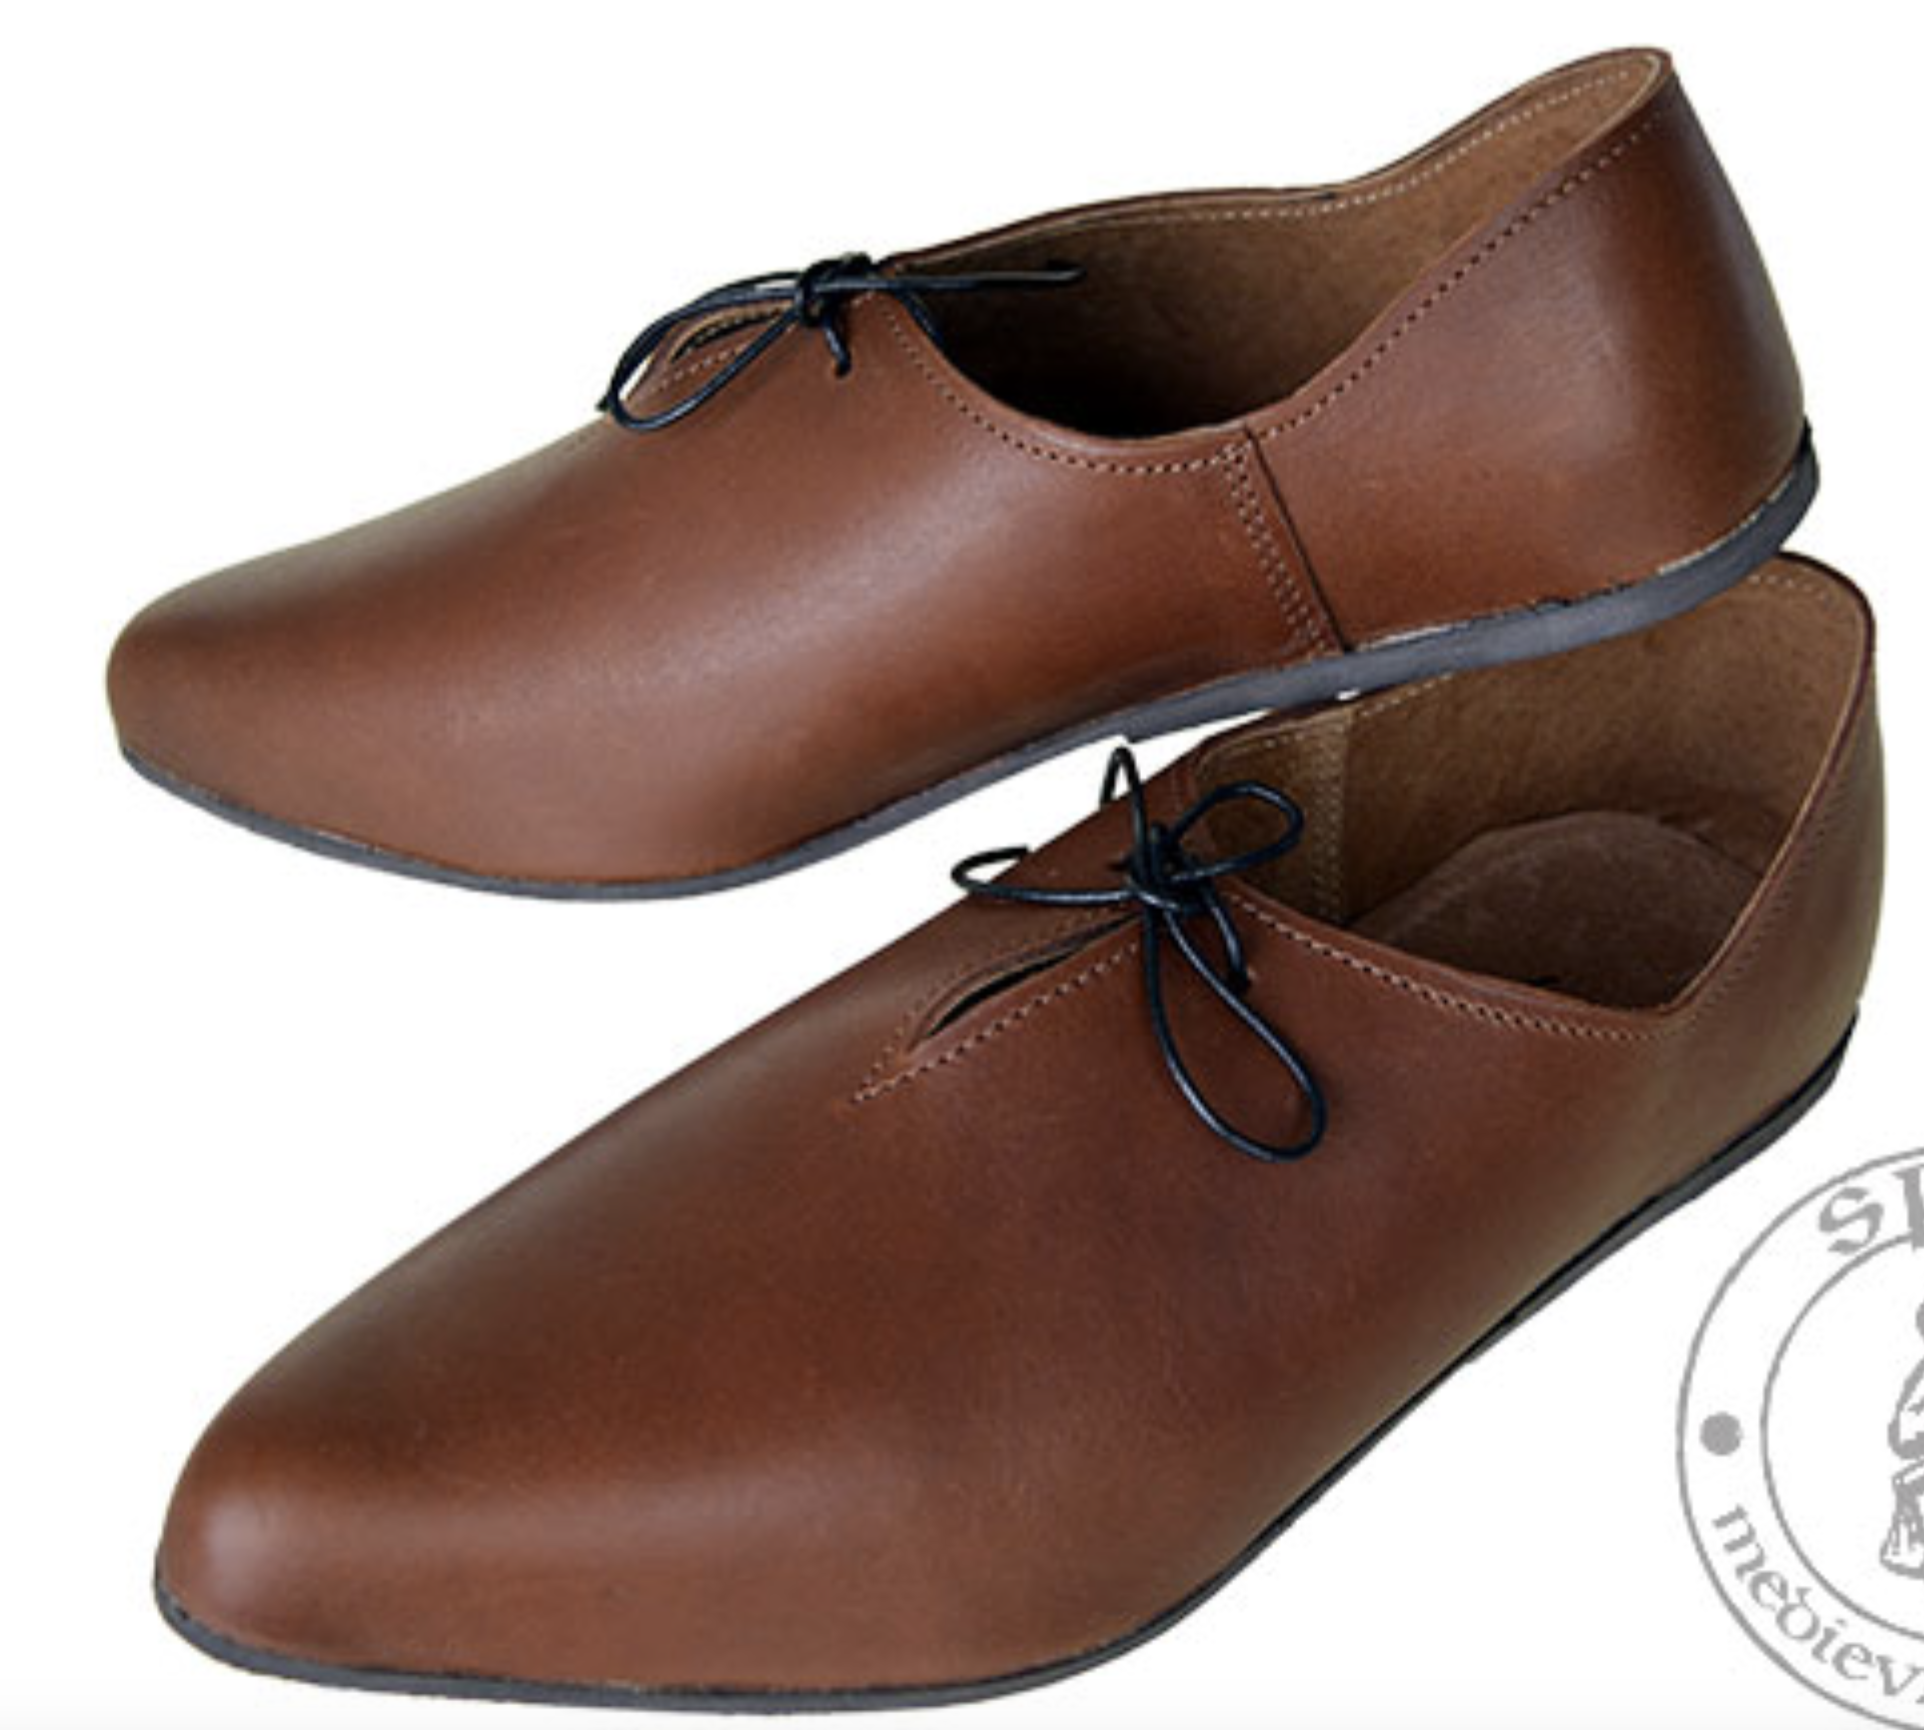 Chaussures Homme : MS1356 - 70 €